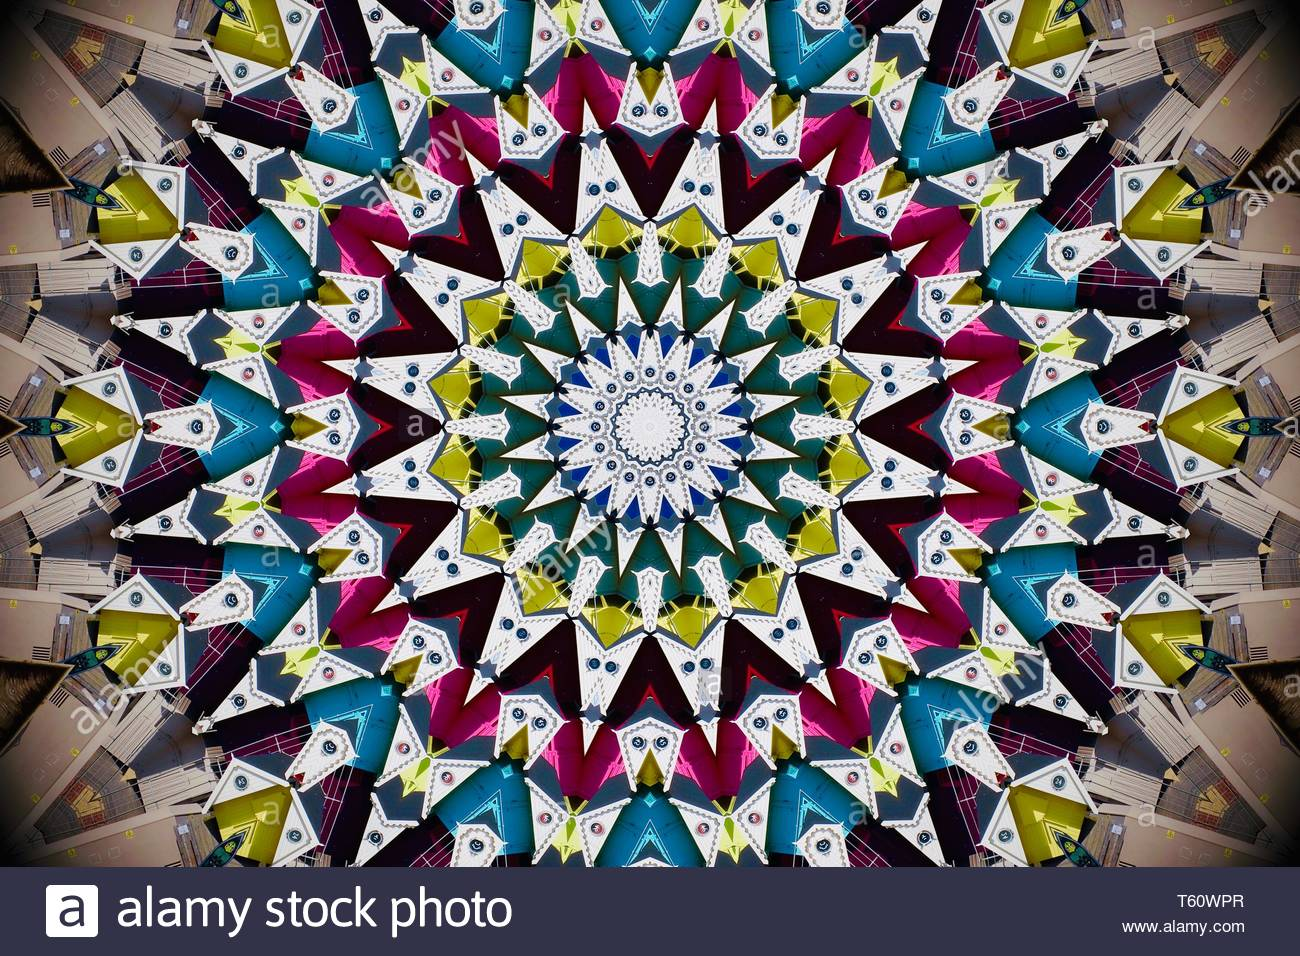 abstract-kaleidoscope-view-of-beach-huts